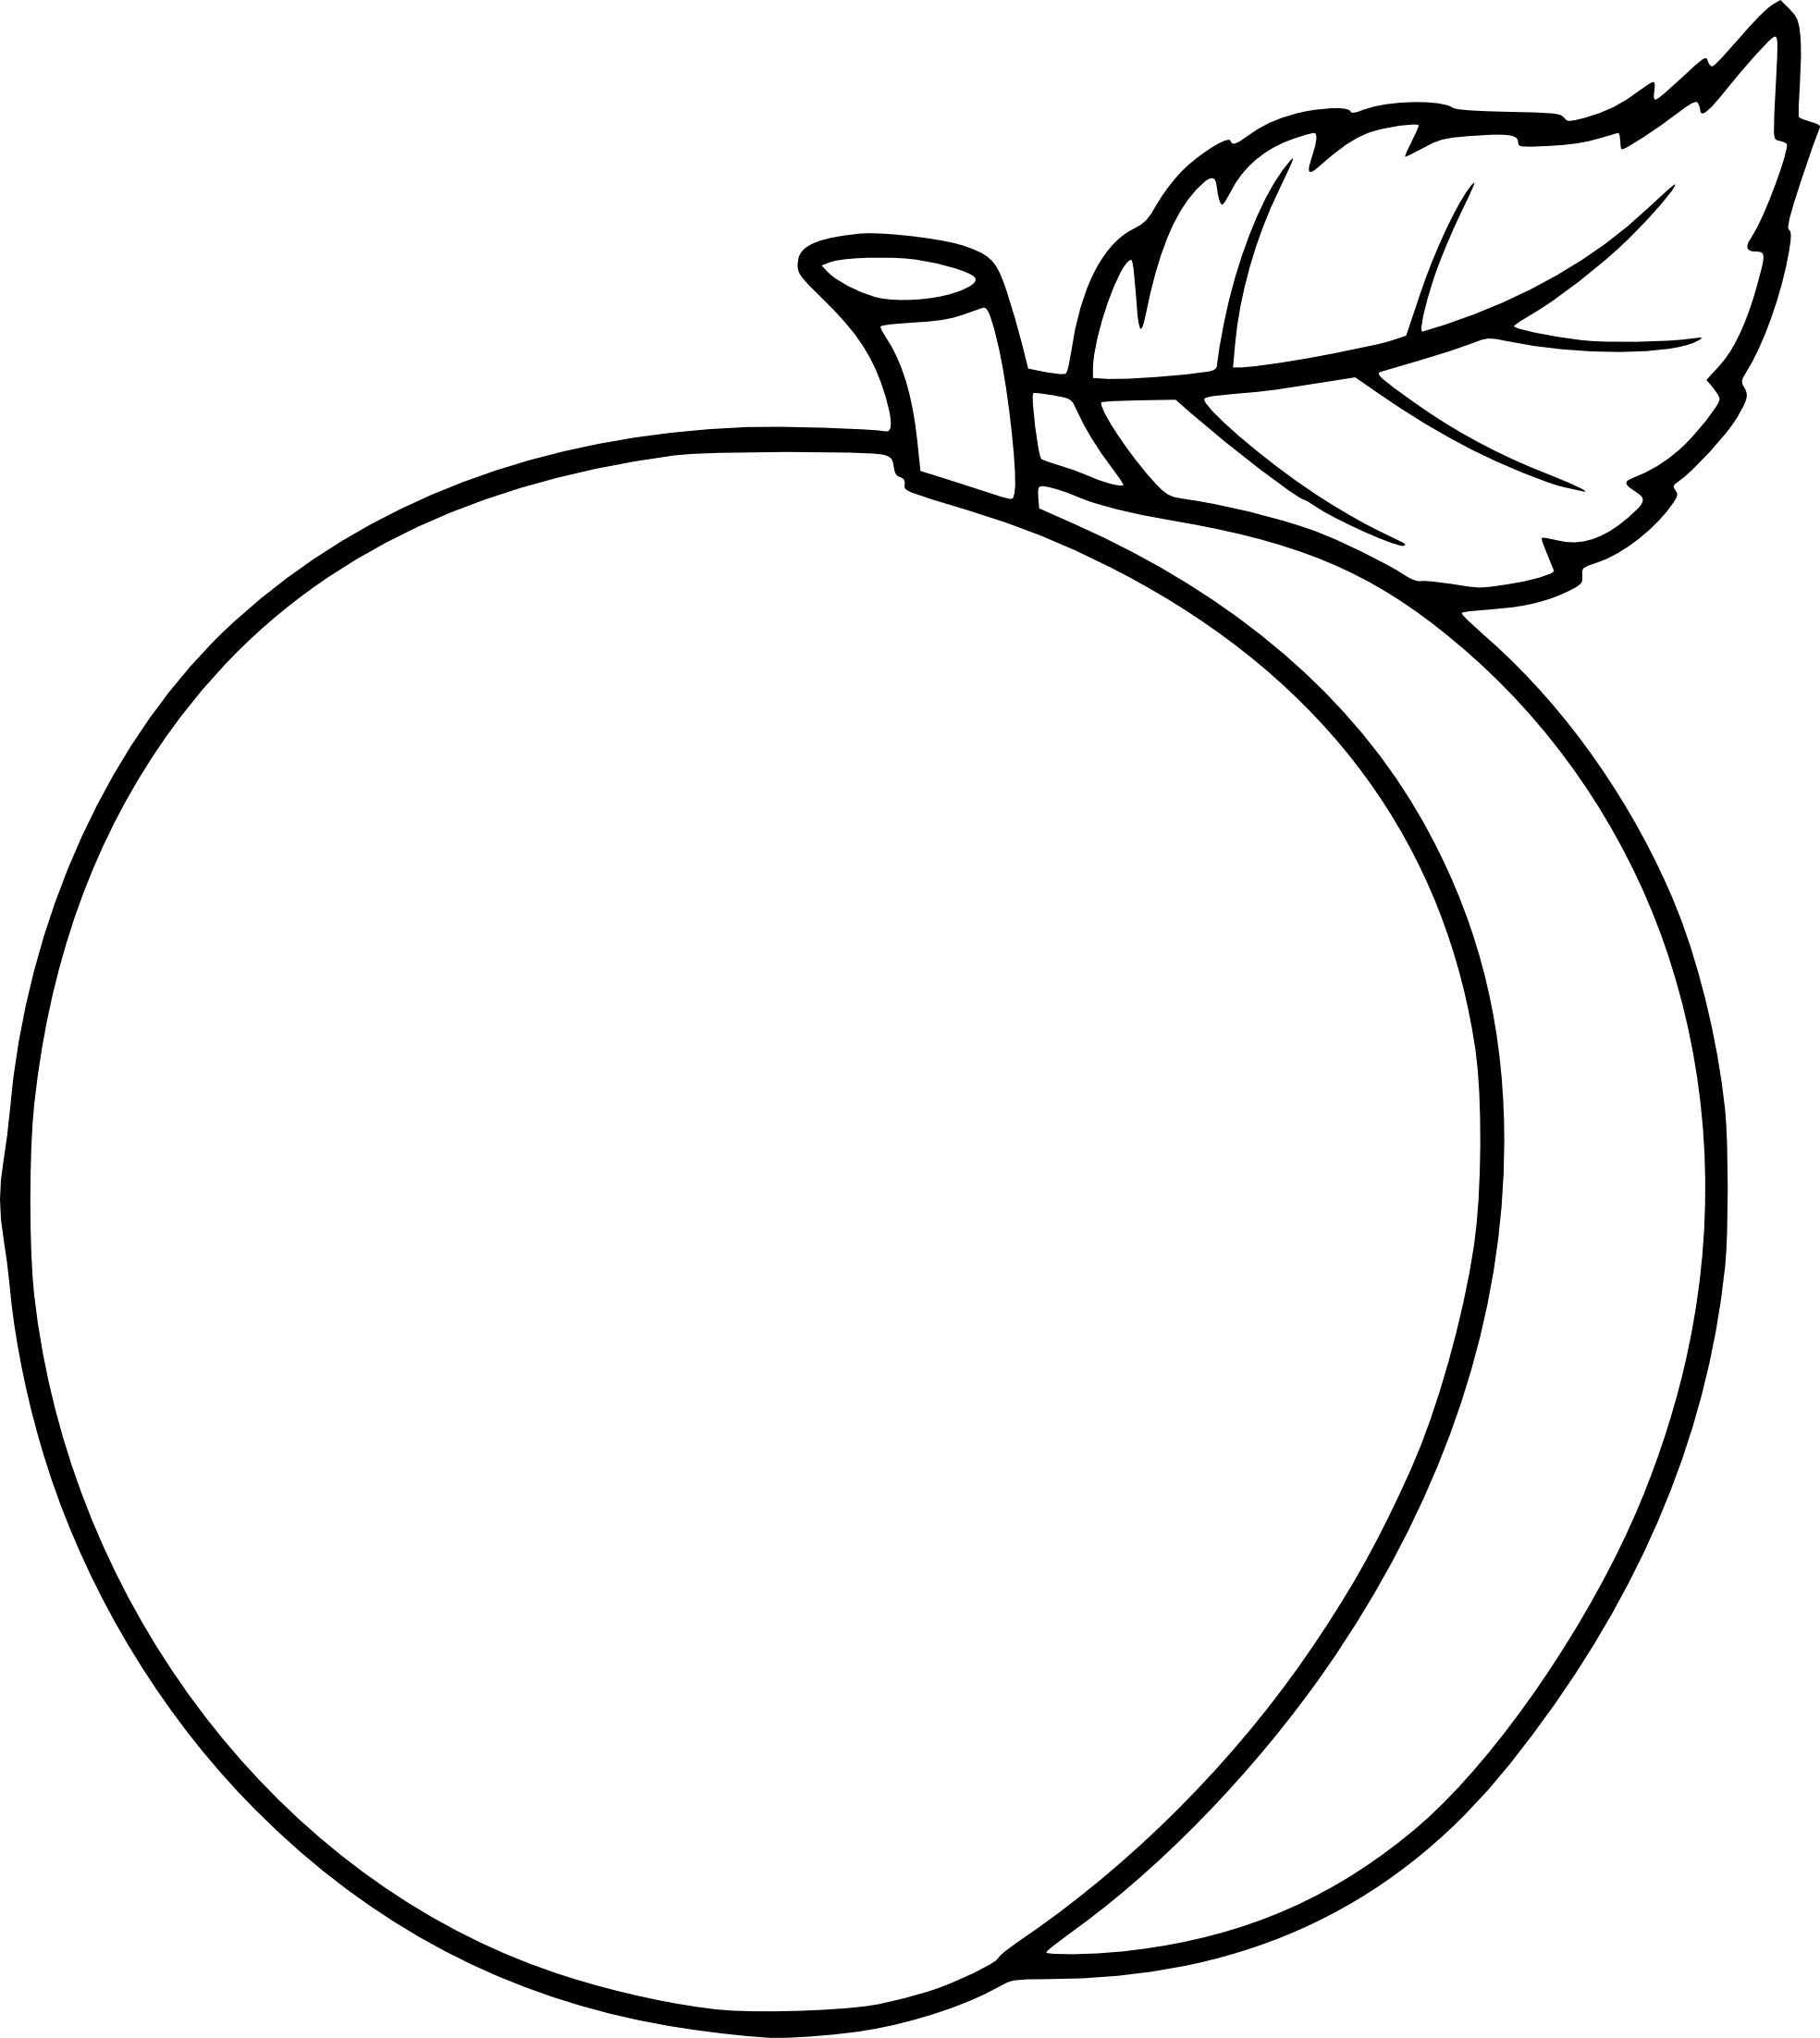 Coloriagepeche in addition Printable Blank Person  Cartoon Child in addition Jack Skellington Pumpkin Pattern And Cut File additionally 45914 6 Coloring Page furthermore Wwe Wrestling Coloring Pages. on disney templates